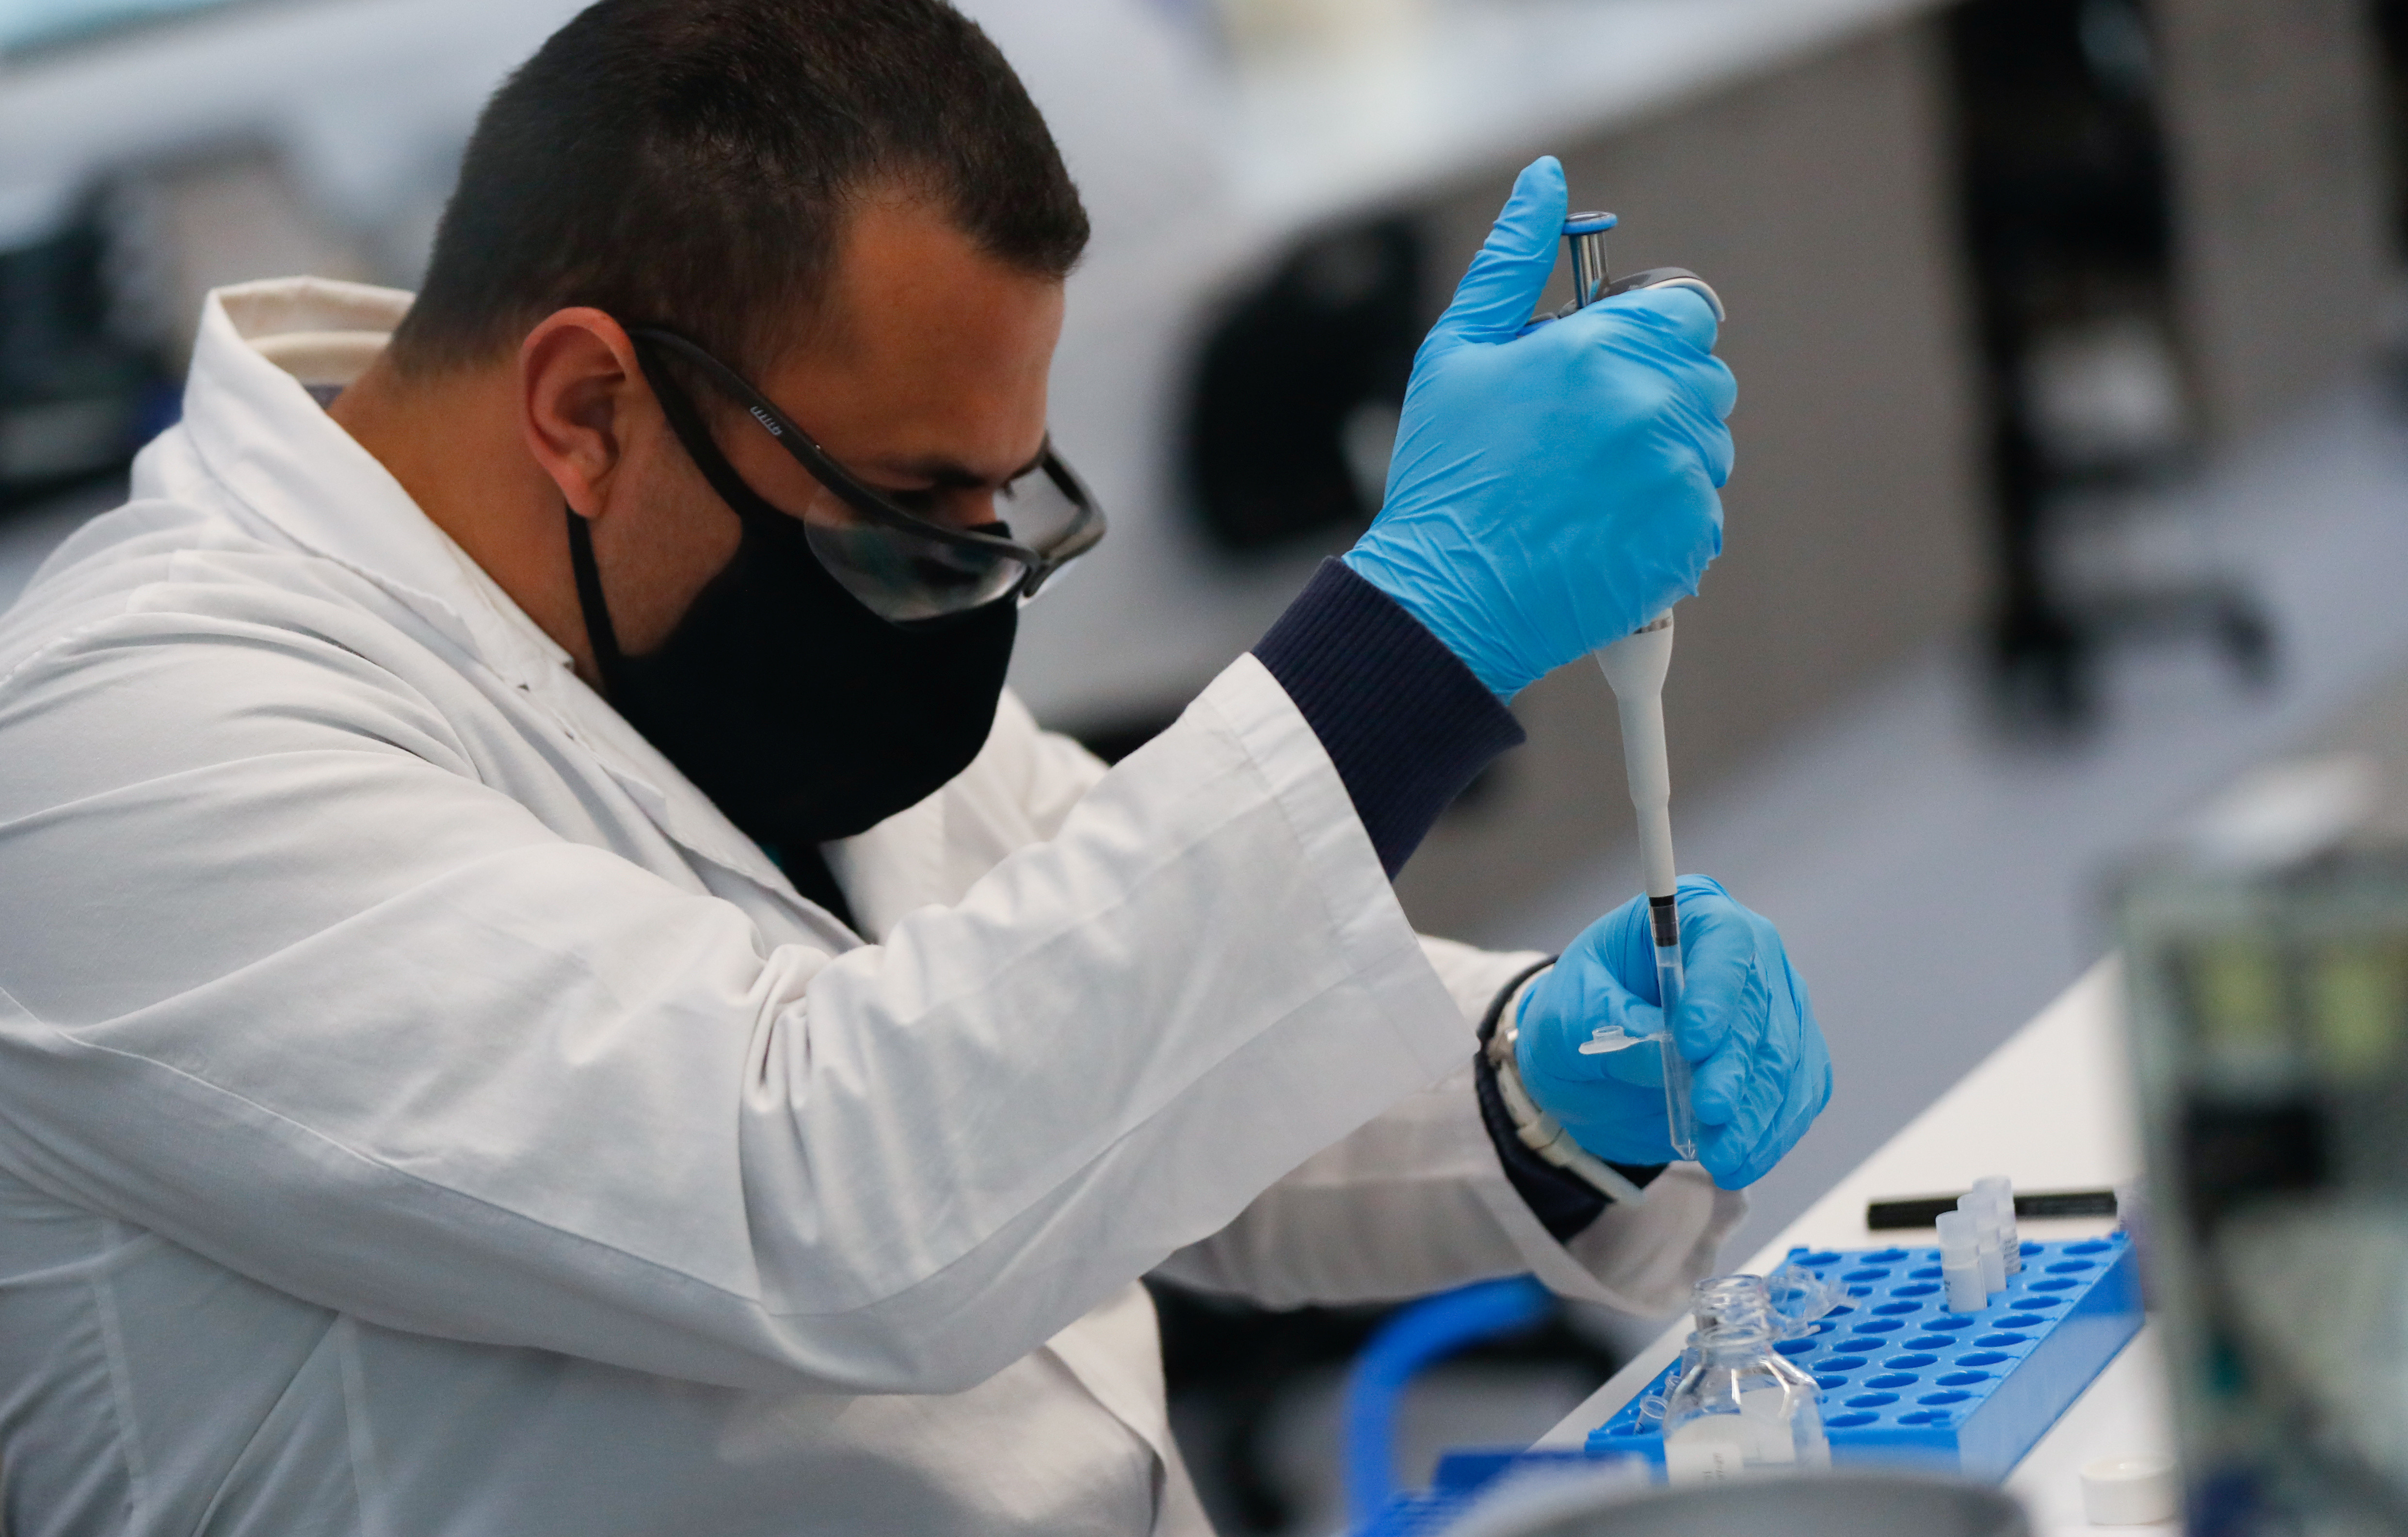 A laboratory technician of biotechnology company mAbxience is seen working, amid the outbreak of the coronavirus disease (COVID-19), in Buenos Aires, Argentina August 13, 2020. REUTERS/Agustin Marcarian - RC29DI9XQTQP